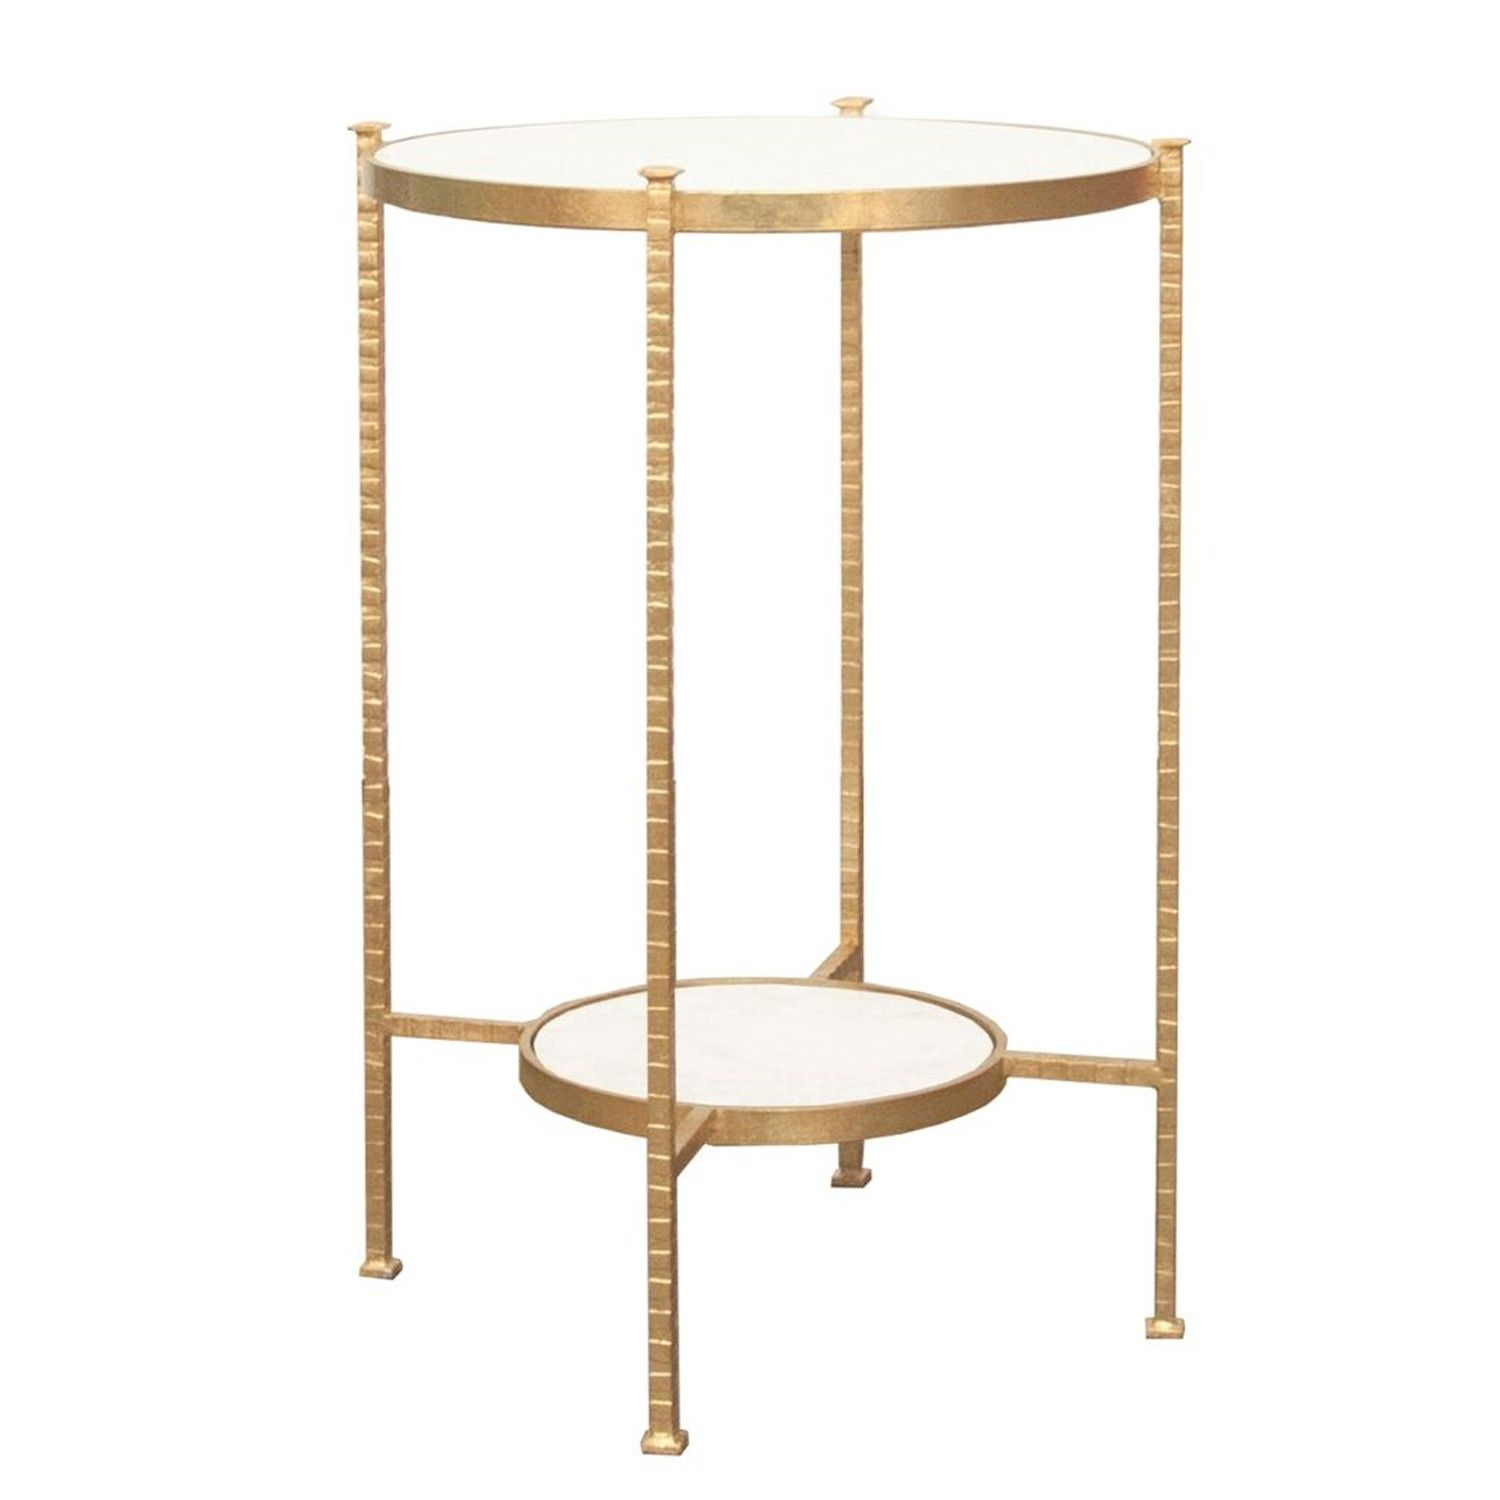 worlds away cory side table gold tables end accent with marble top round two tier hammered iron white carrara leaf metal basket dale tiffany hummingbird lamp wood living room